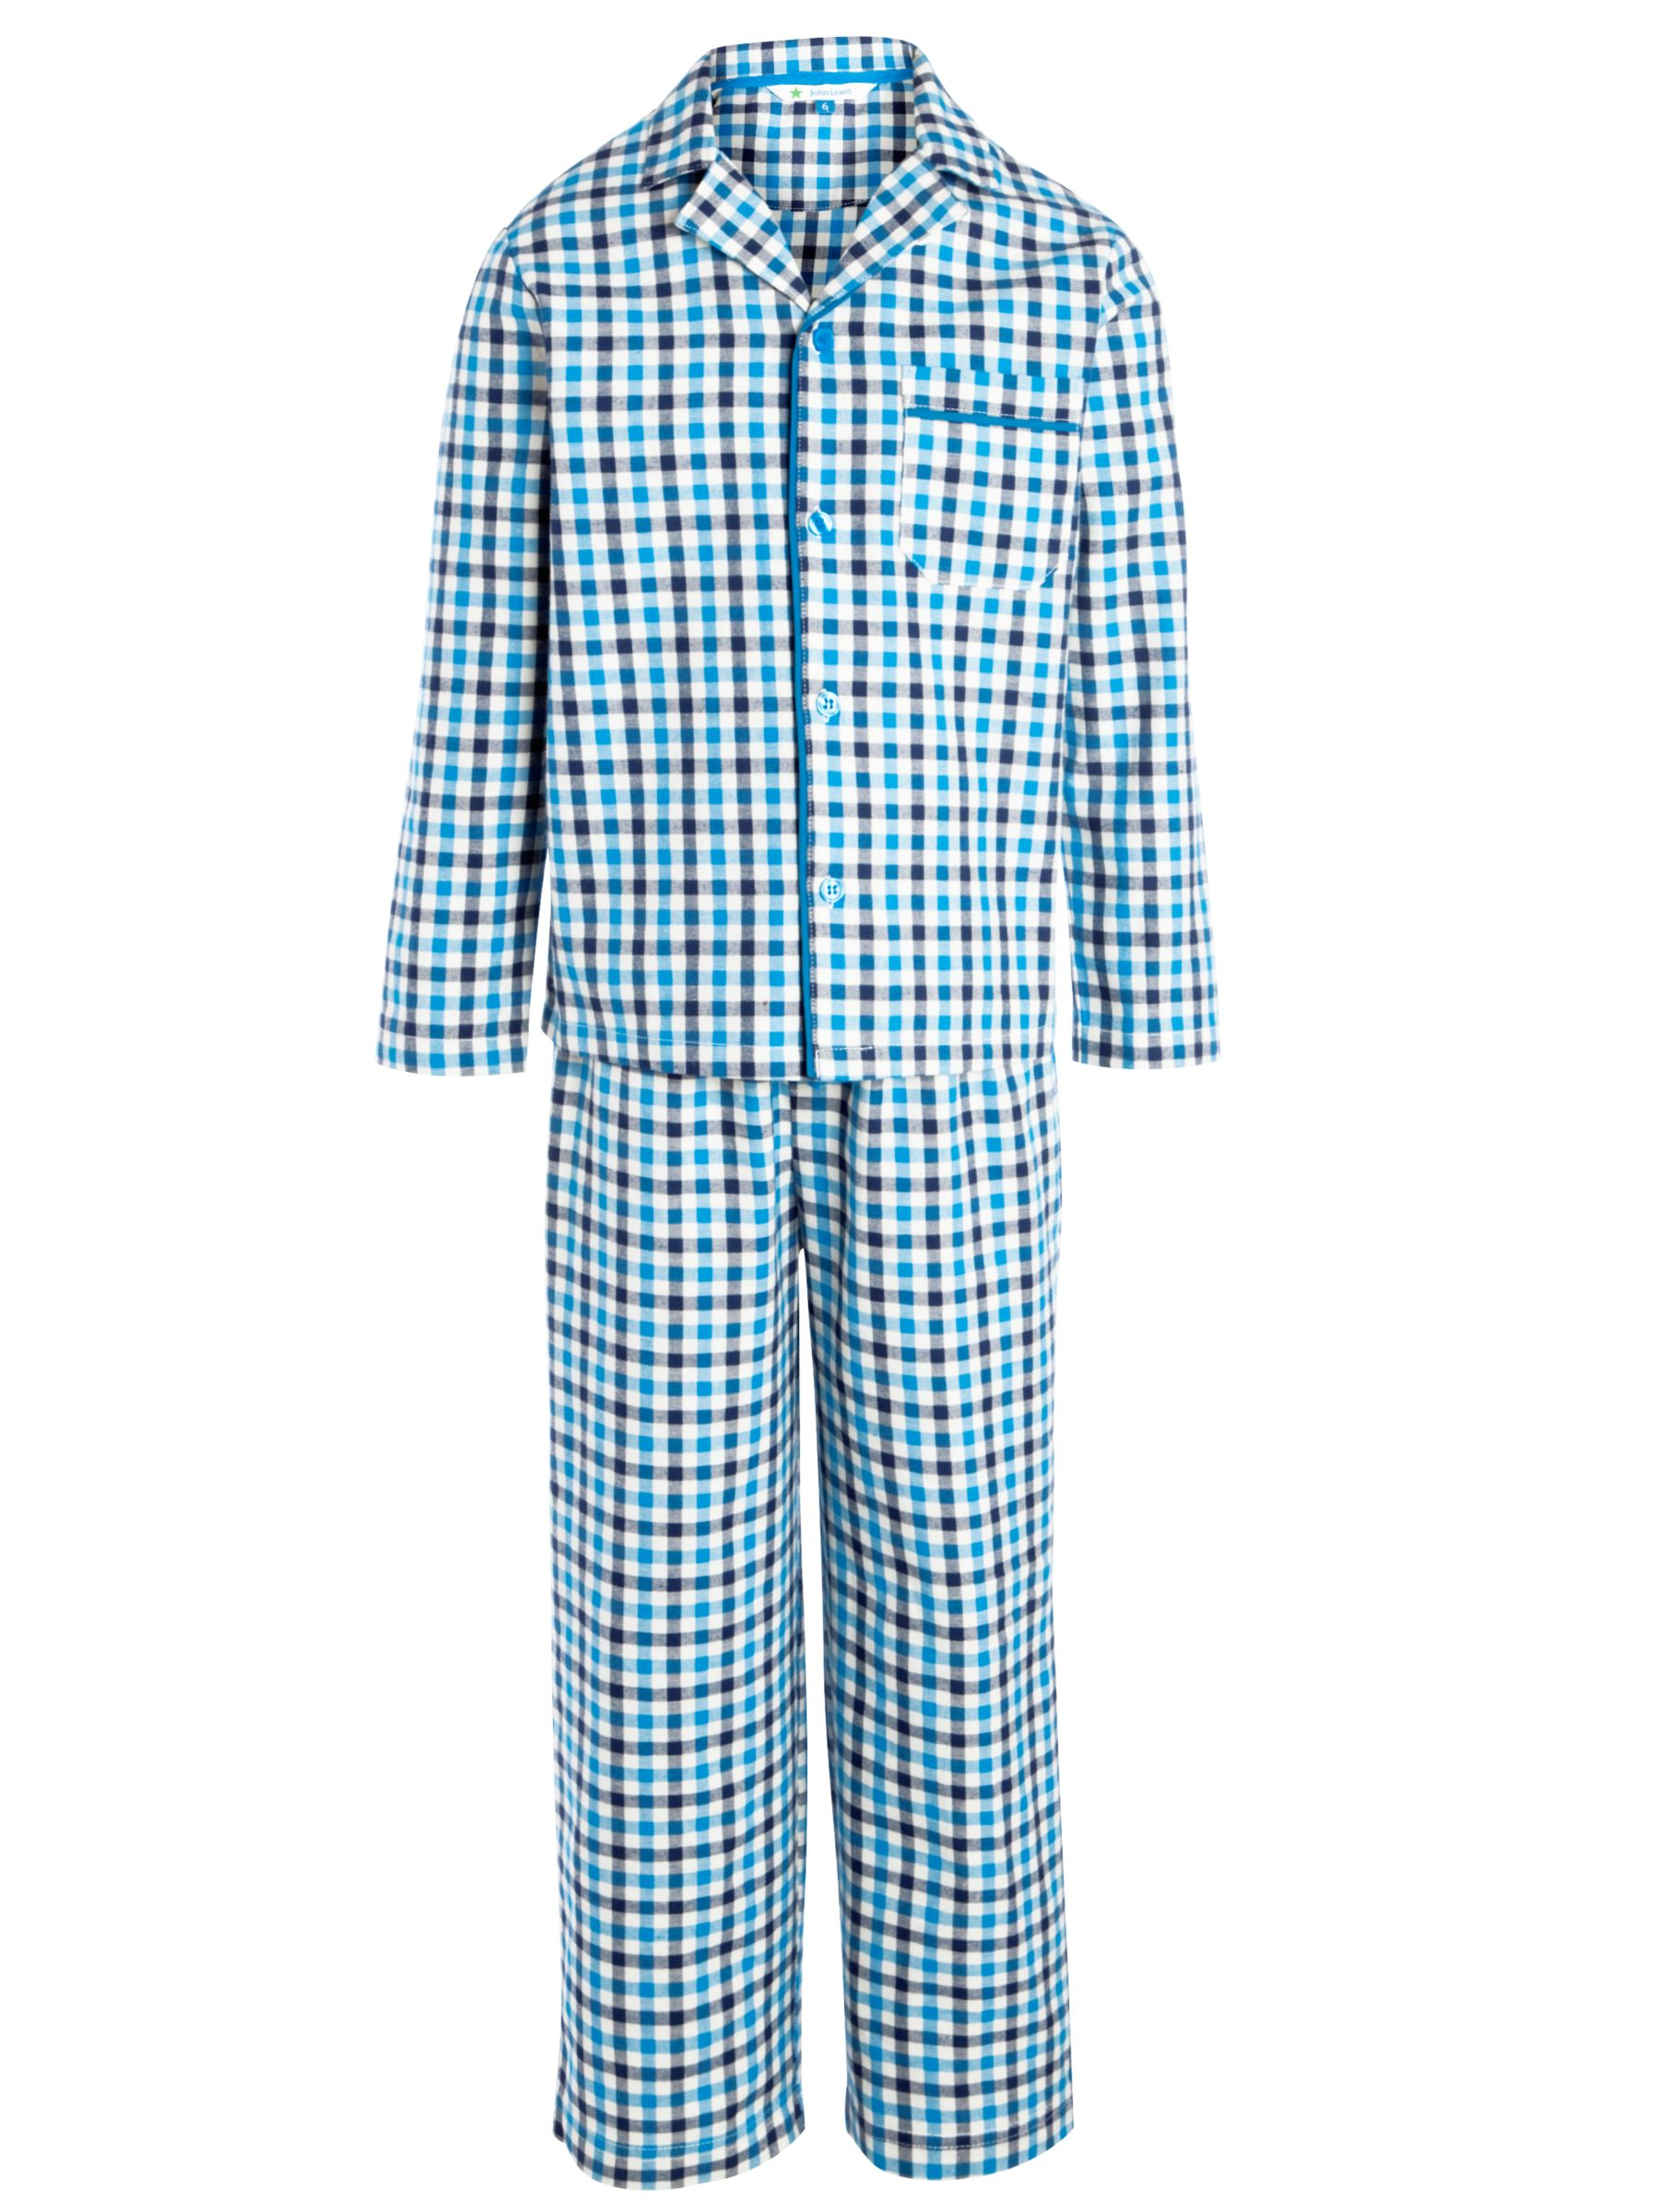 John Lewis Boy Check Pyjamas, Blue